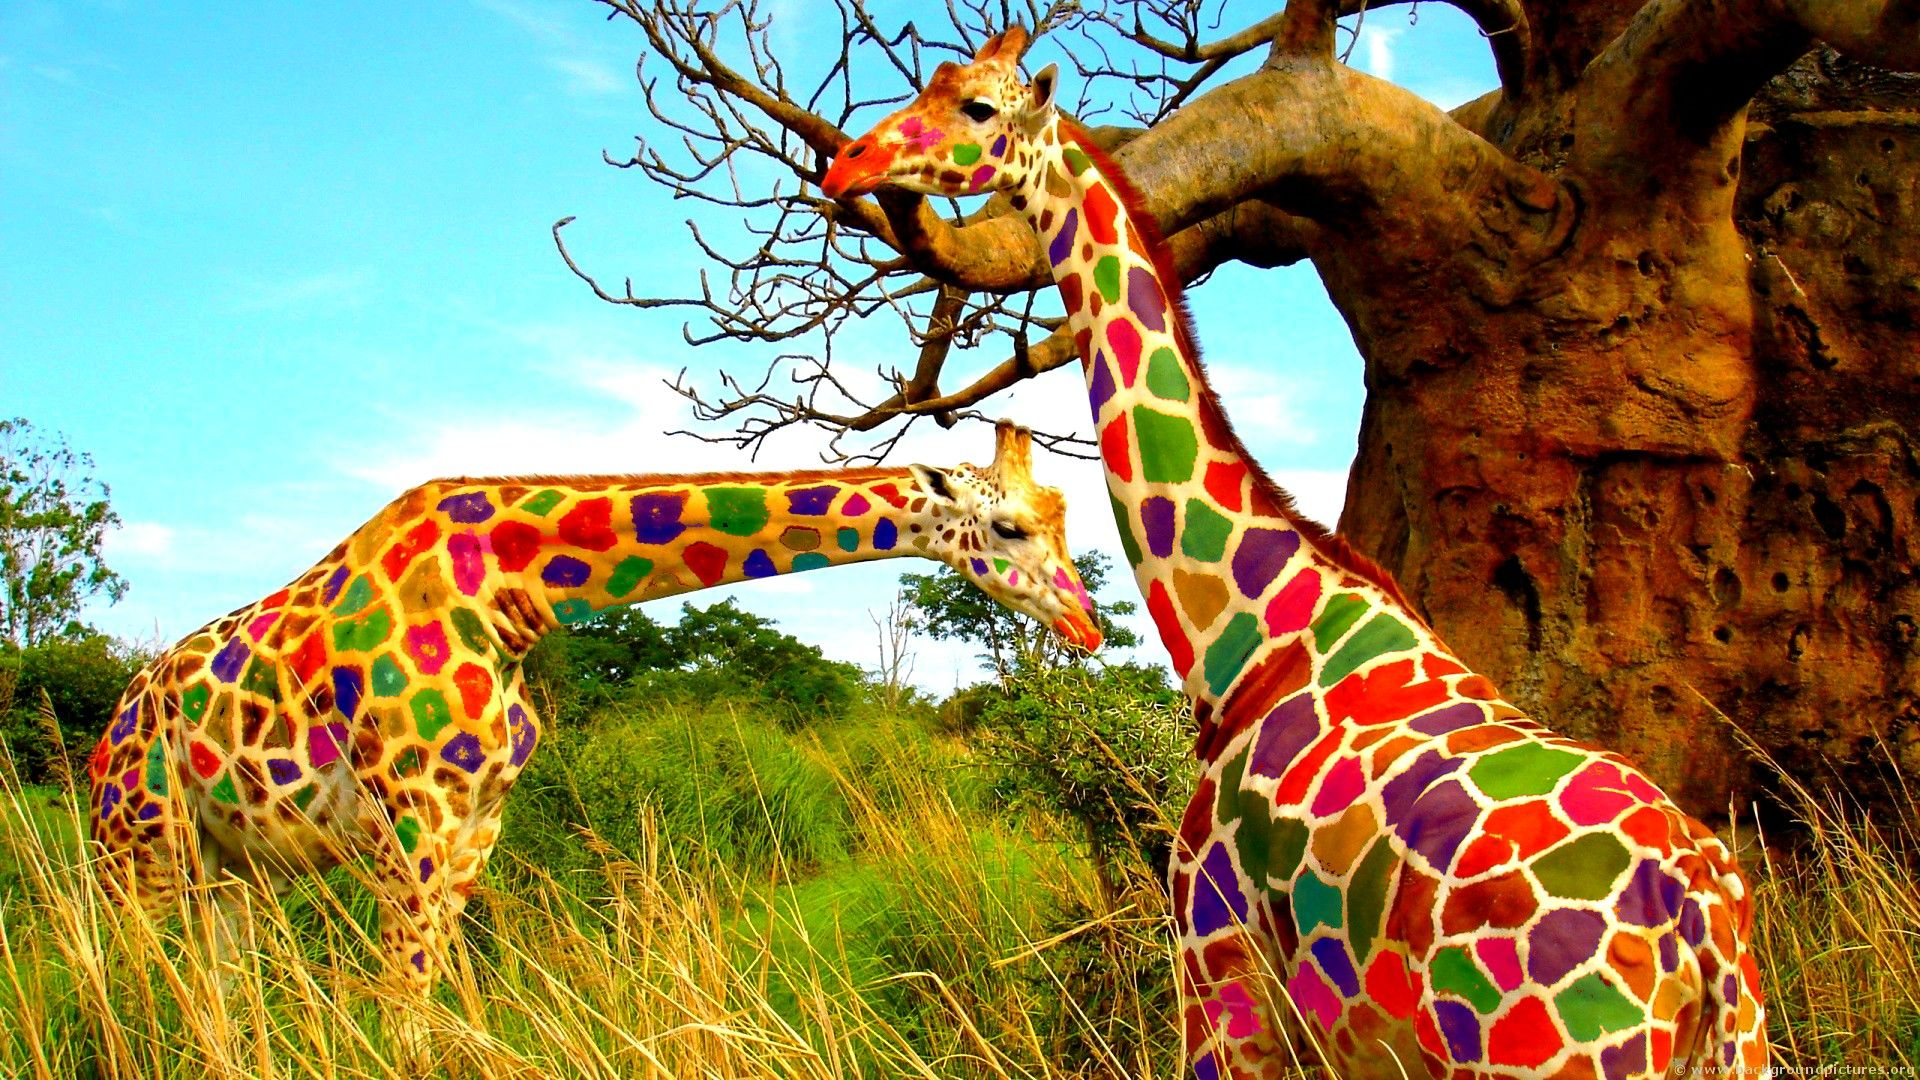 Get Colored Giraffe Wallpaper Wide Or HD From Animals Wallpapers Set High Resolution Image As Your Desktop Background